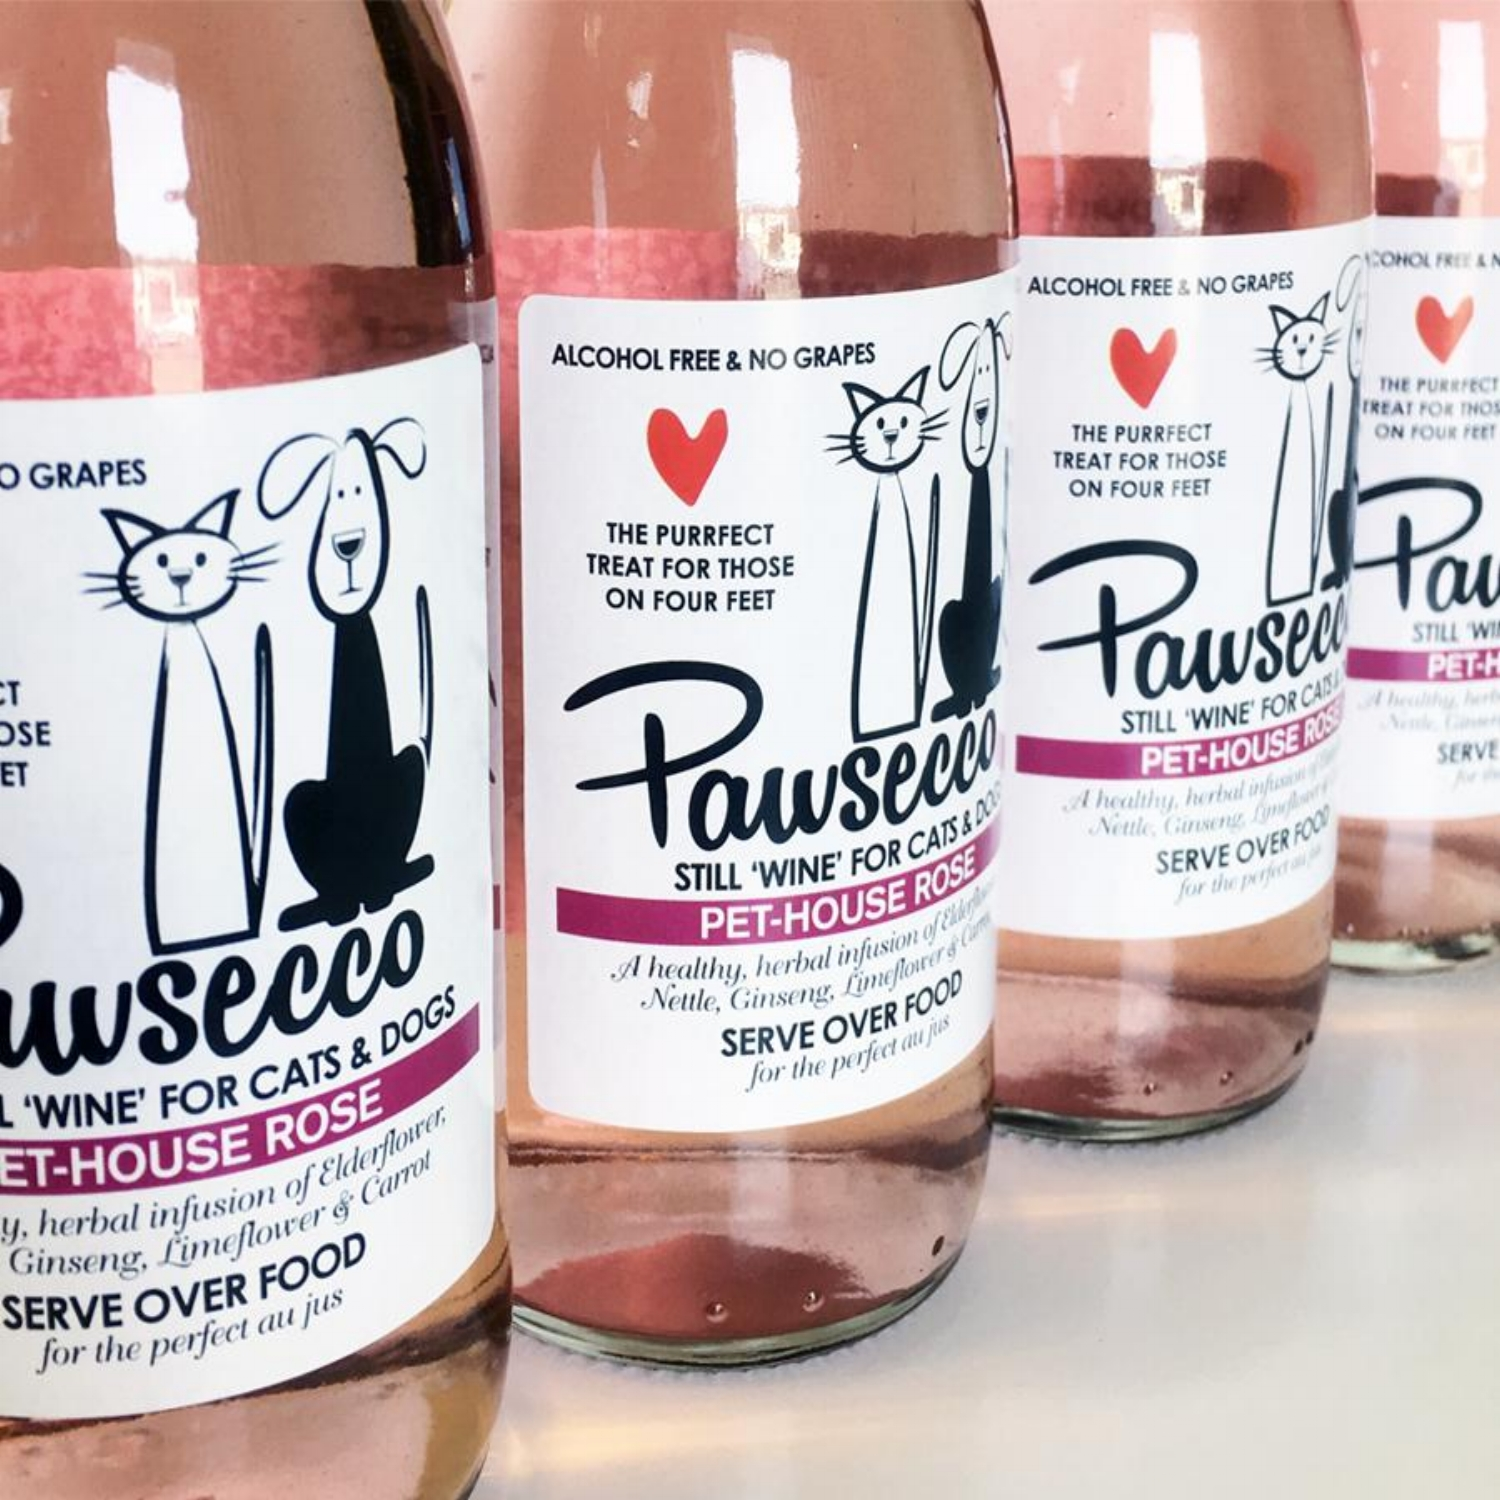 pawsecco-rose-wine-for-cats-and-dogs-250ml-12012006-0-1492095064000.jpg